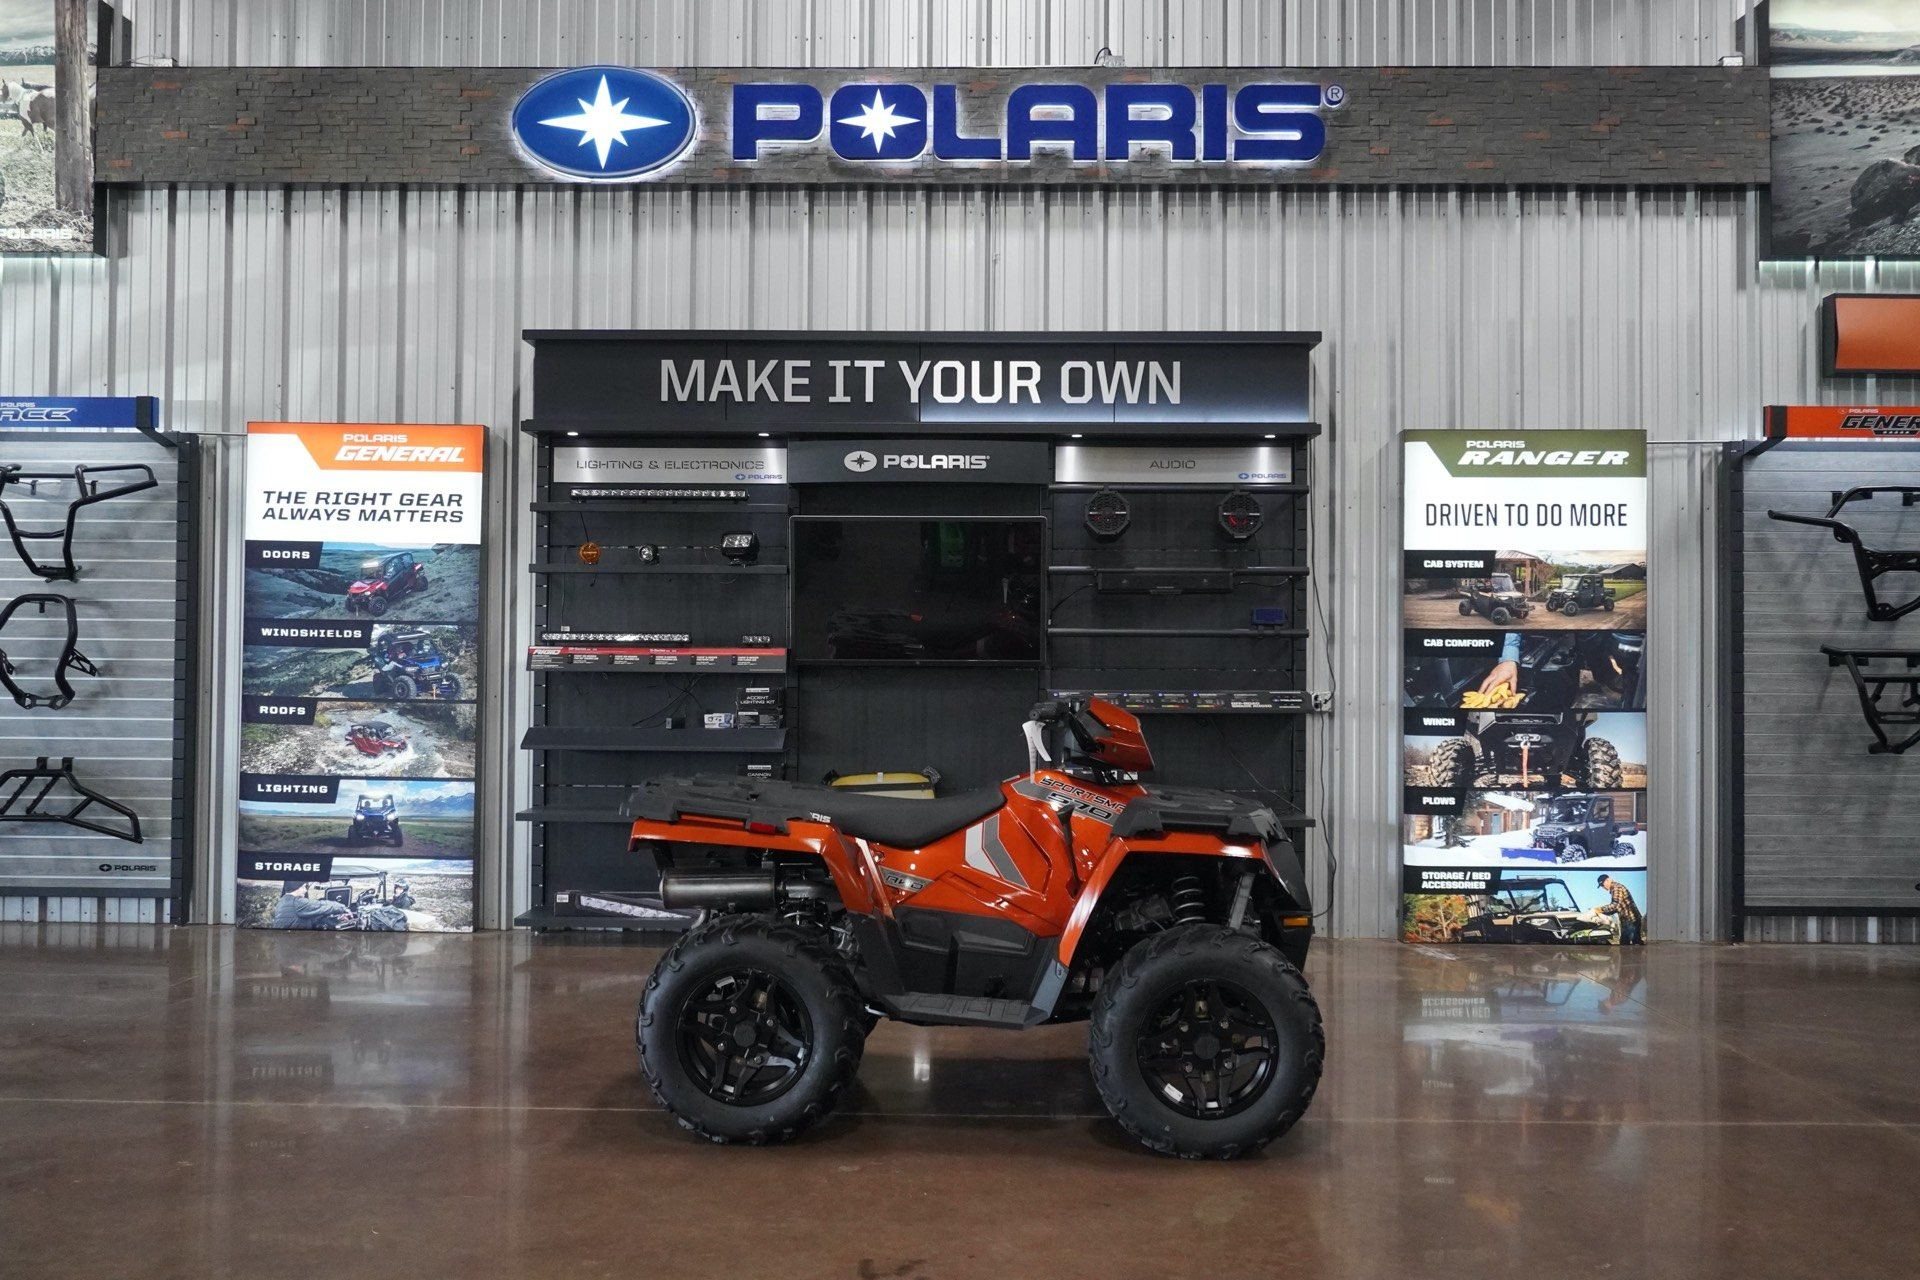 2020 Polaris Sportsman 570 Premium in Sapulpa, Oklahoma - Photo 2